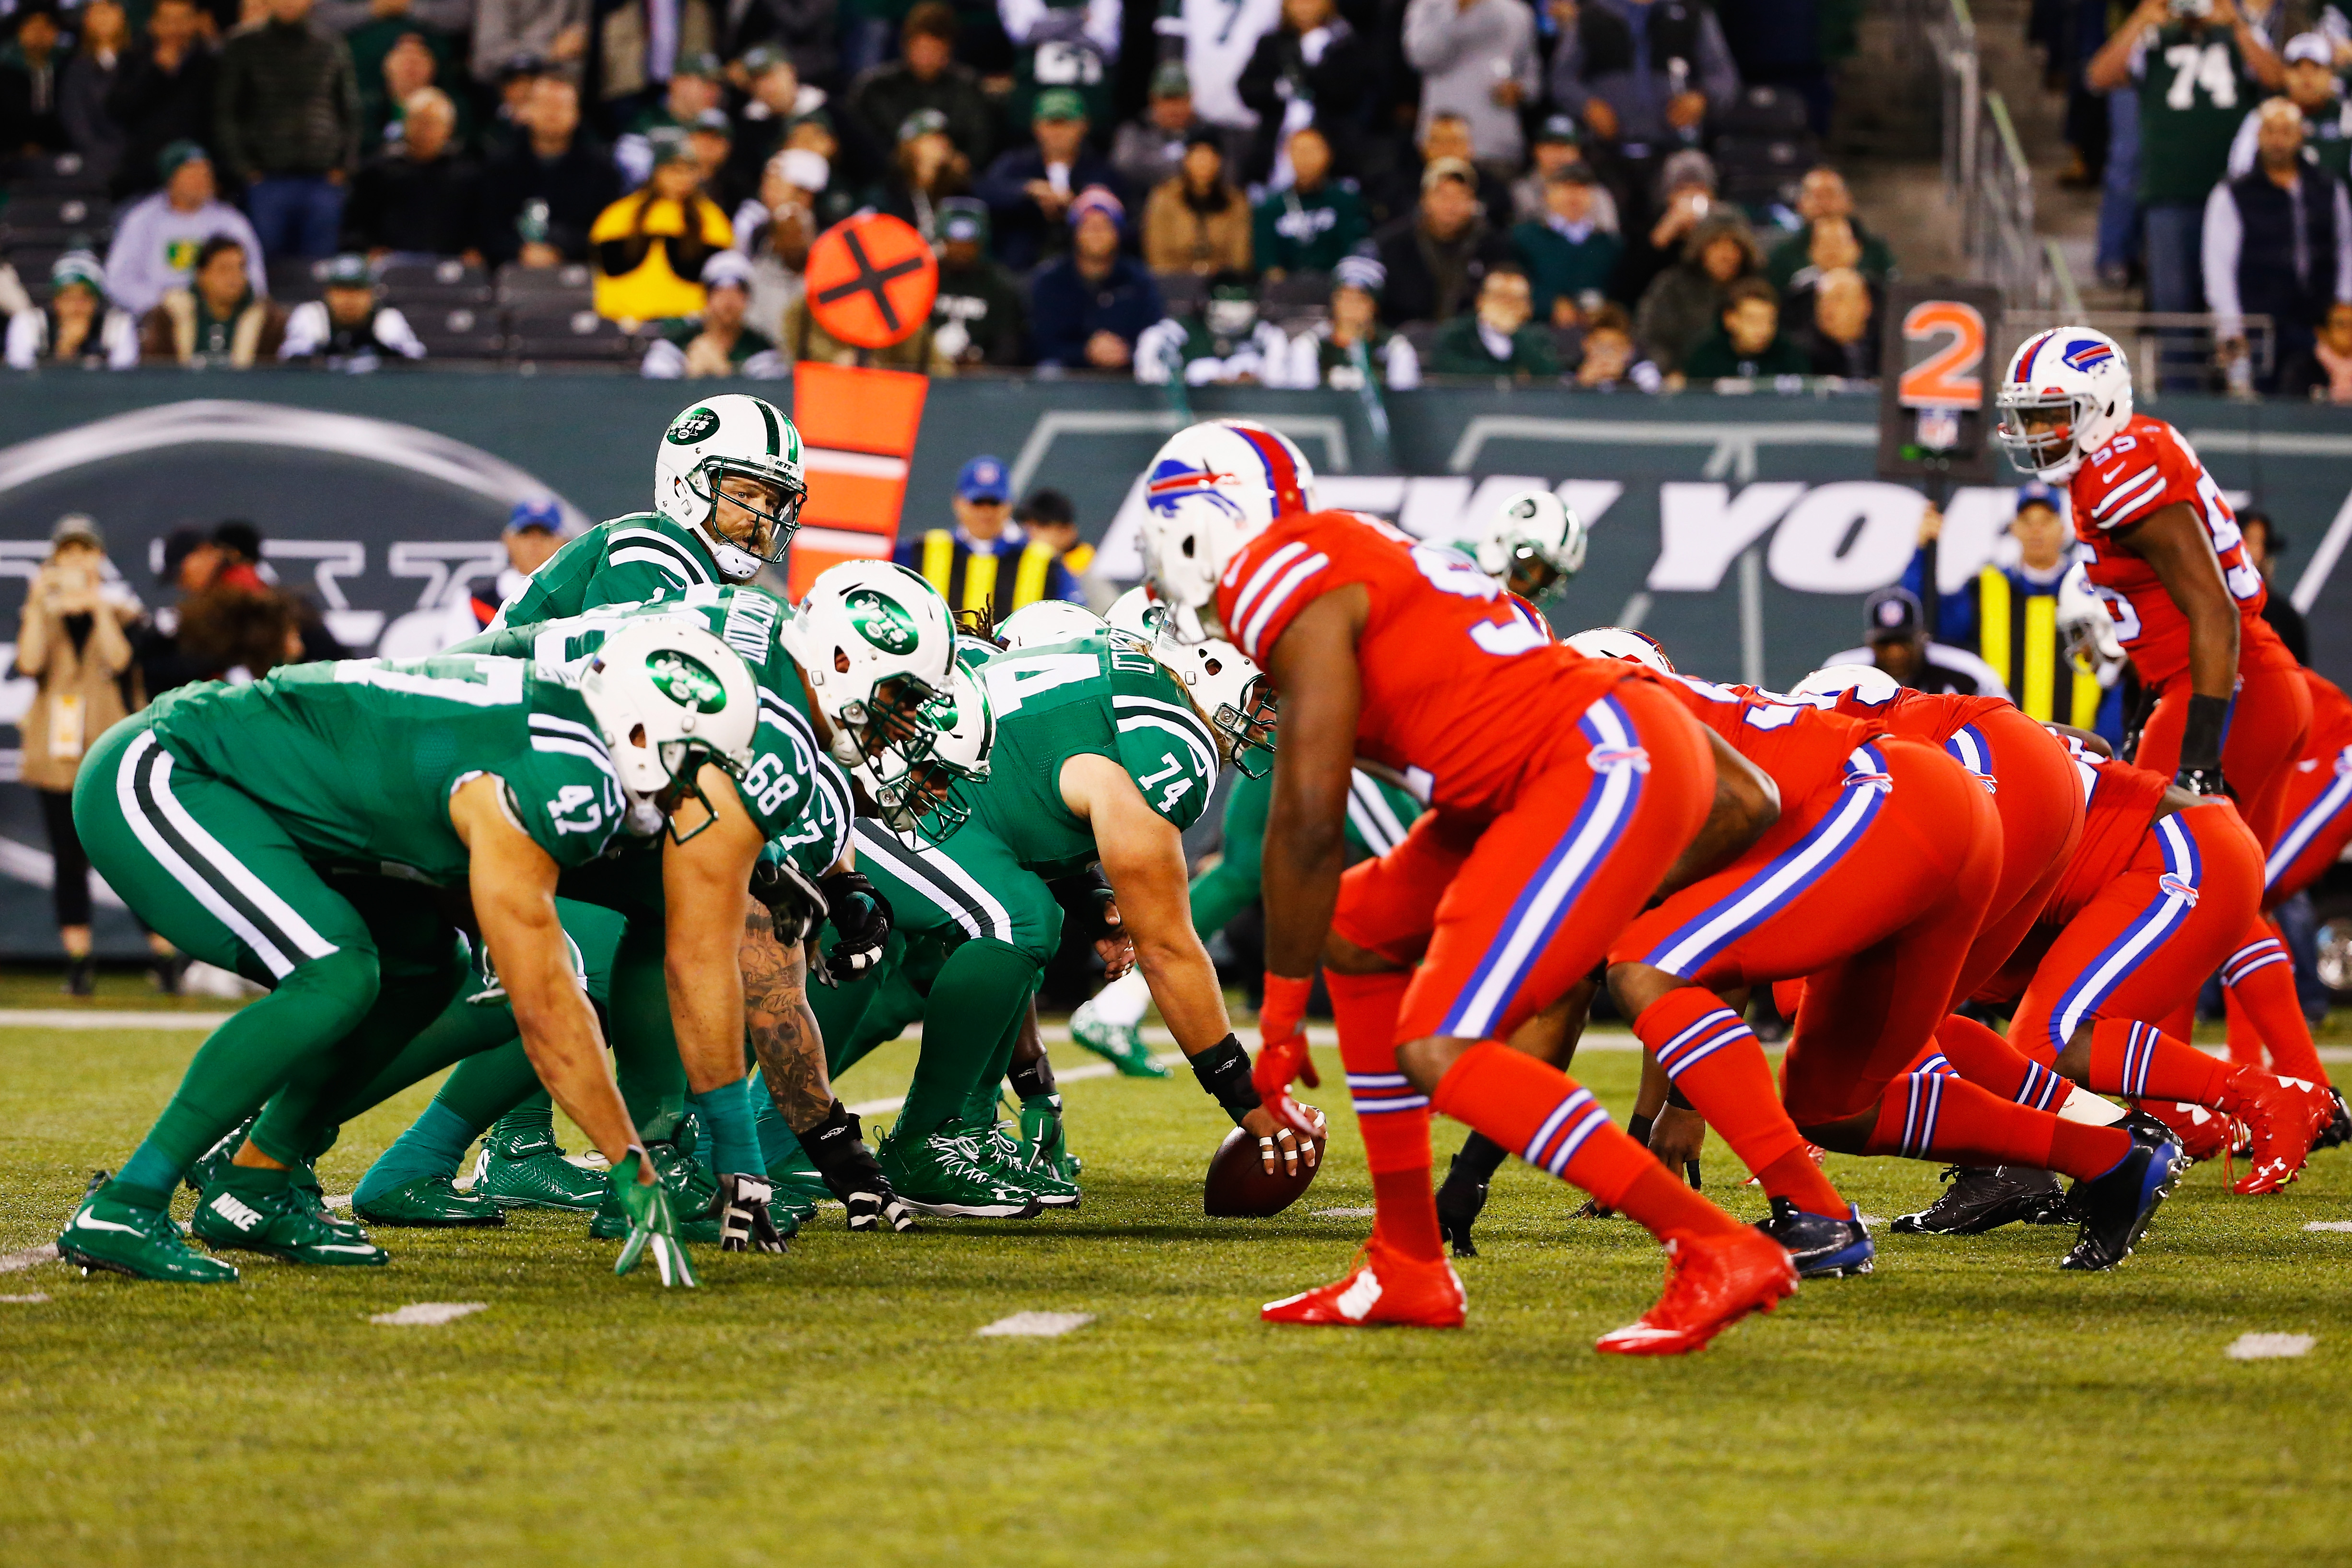 Nfl may have a solution to color blind problem for color rush games jpg  4905x3270 Color 4cc441e16